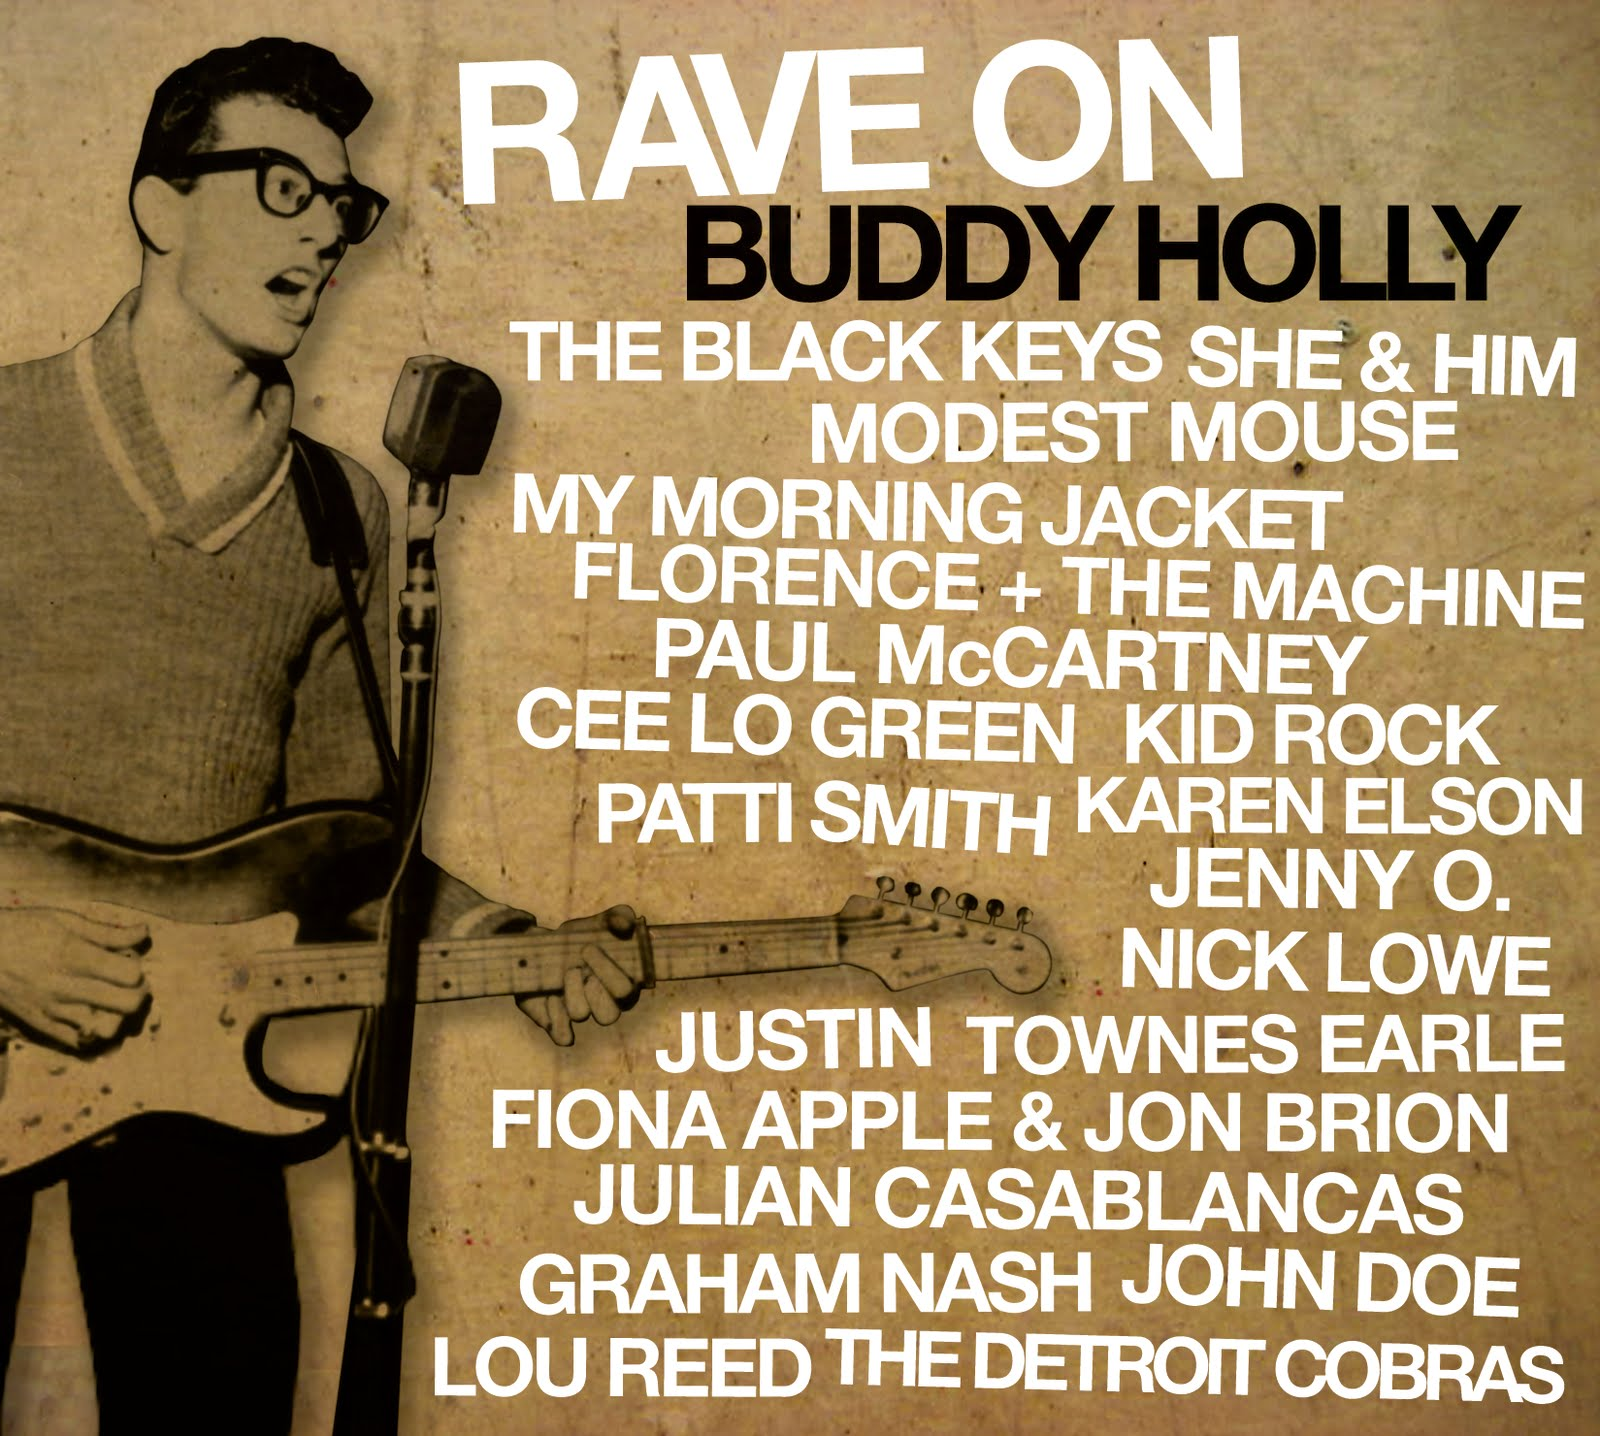 rave-on-buddy-holly-artwork